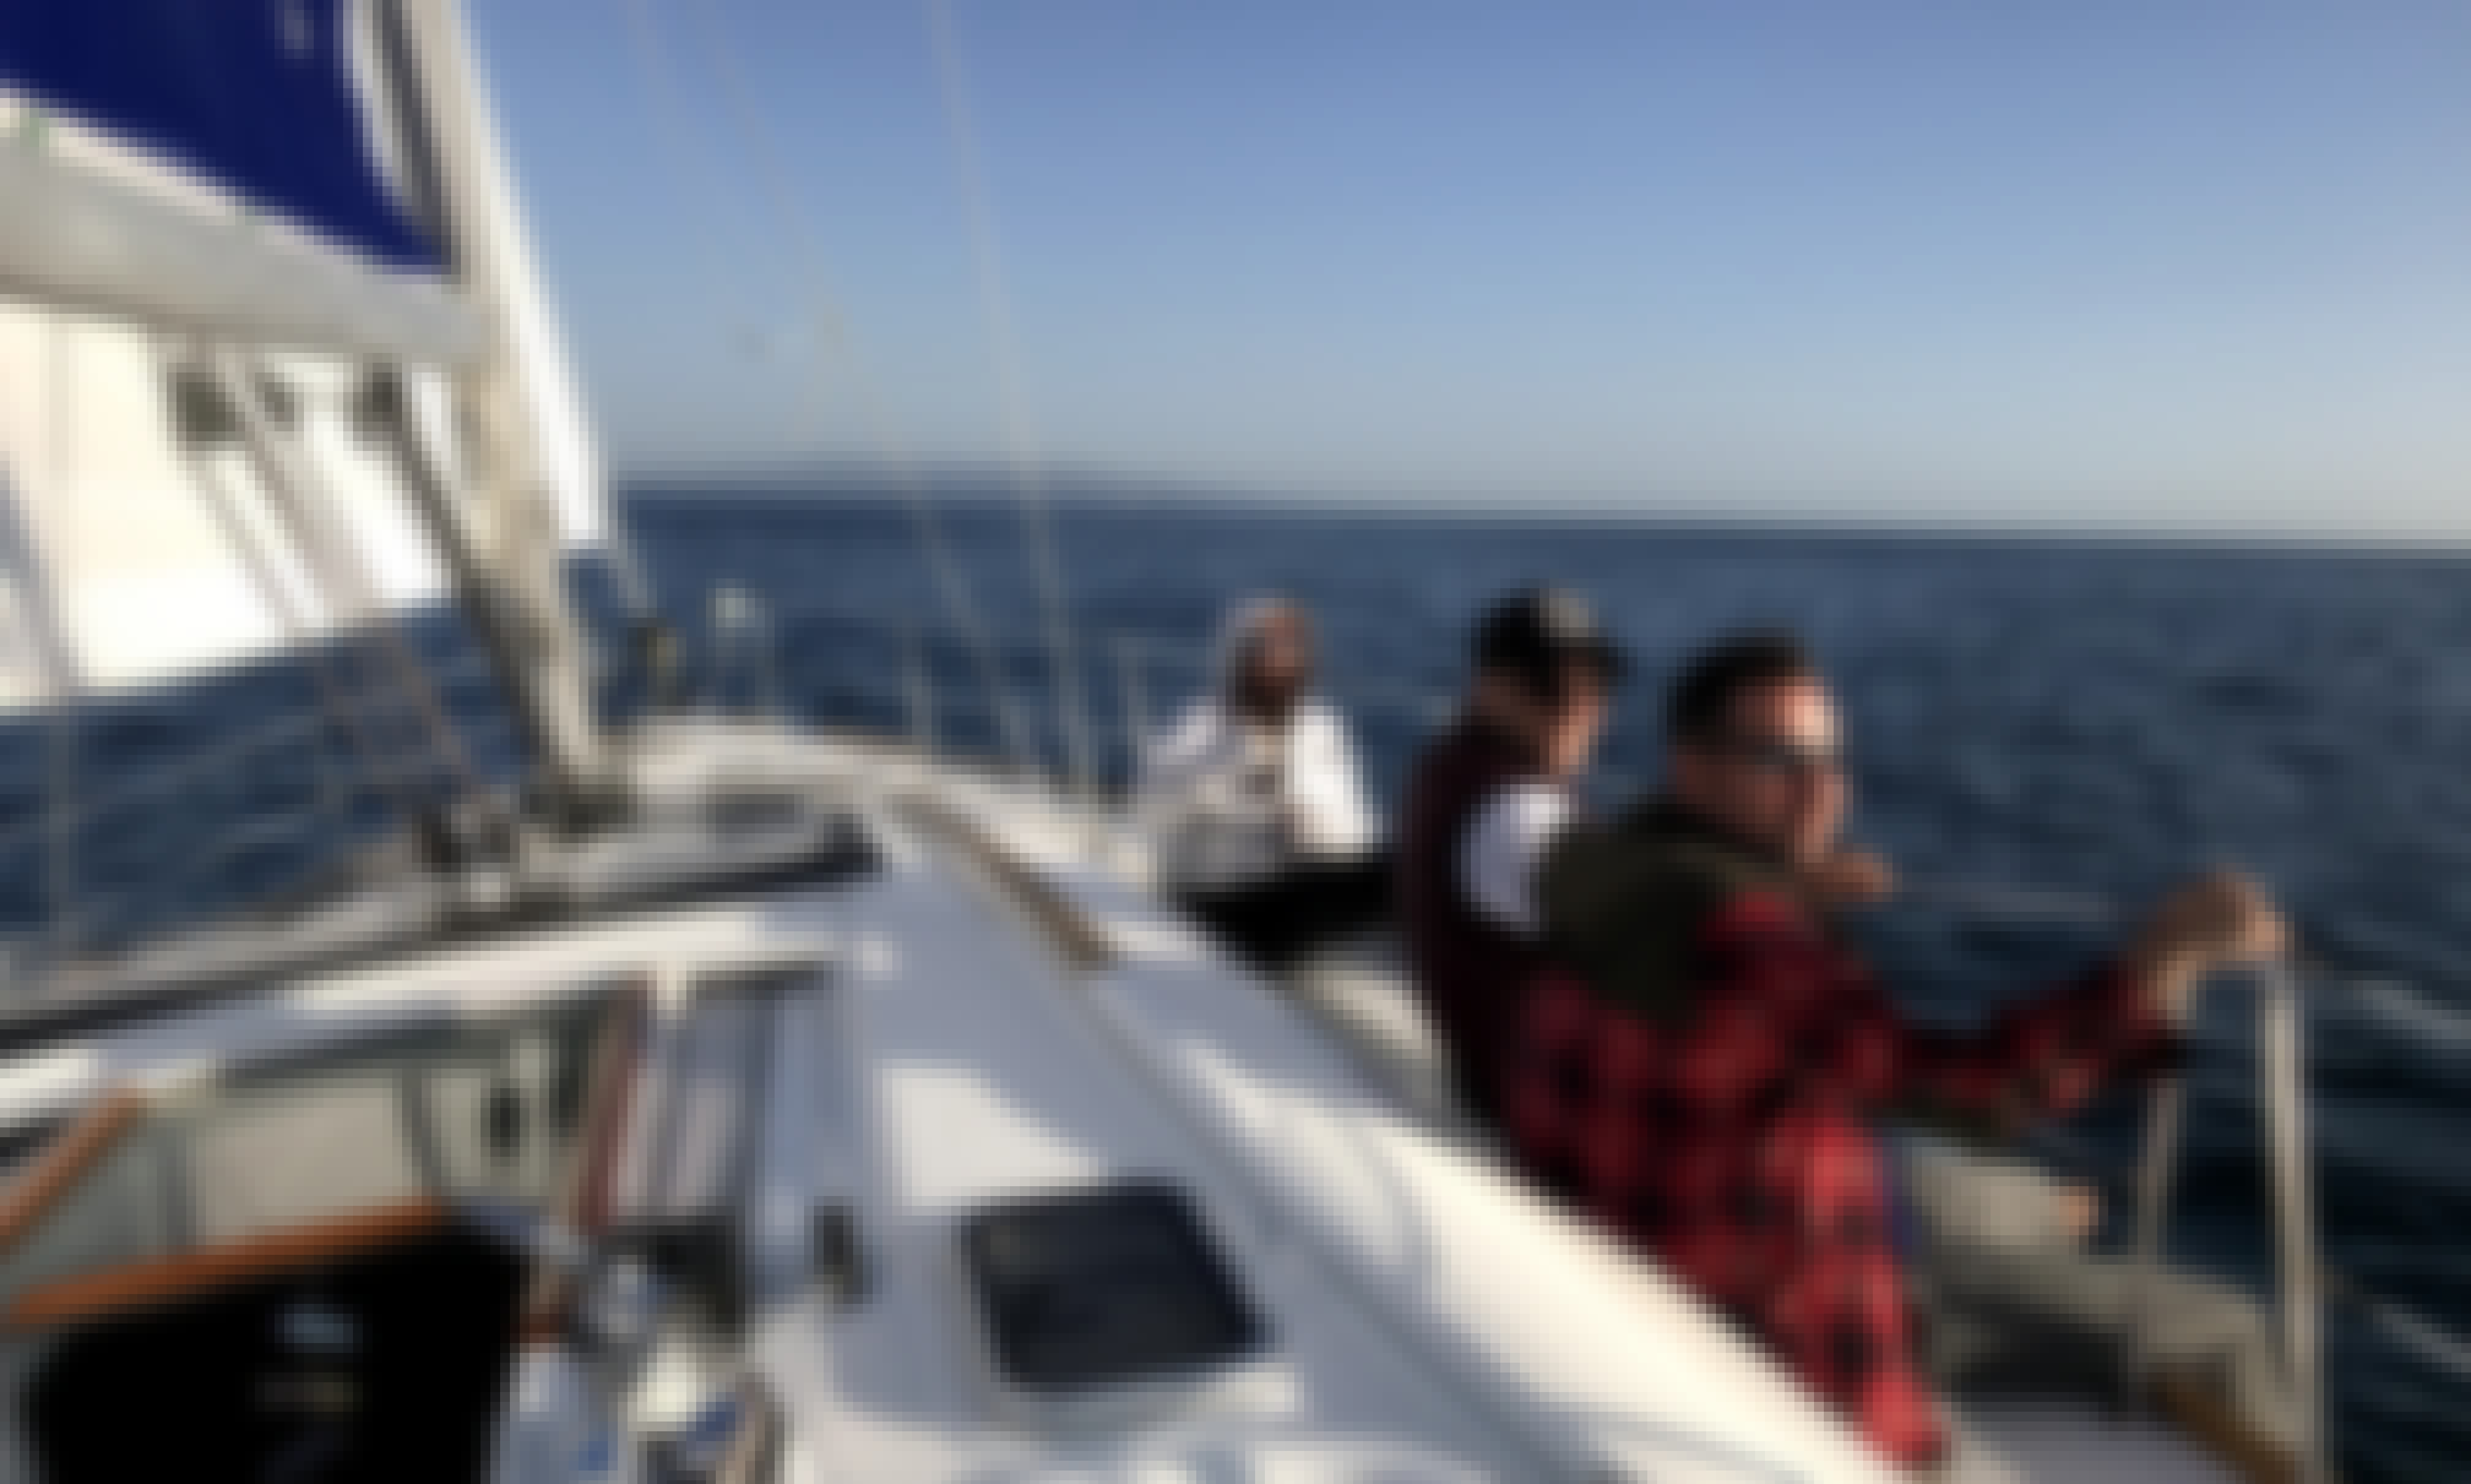 Luxury 47' Sailboat, Beneteau, Marina del Rey - Great for sunset cruises, photo shoots and parties